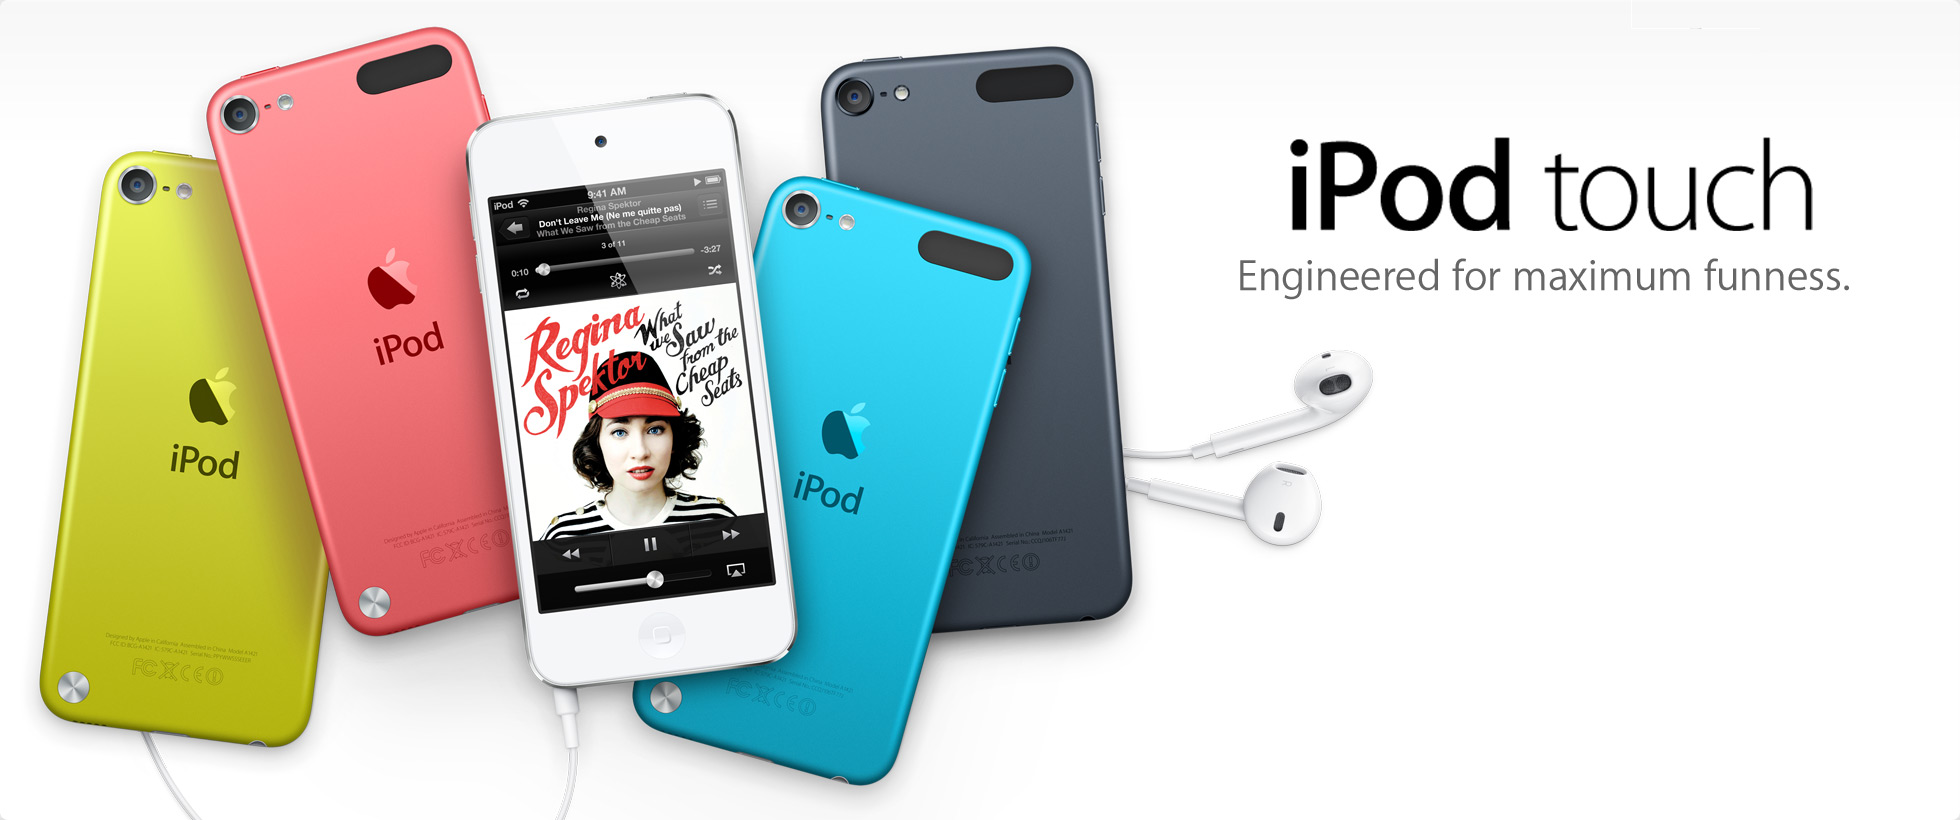 The iPod touch